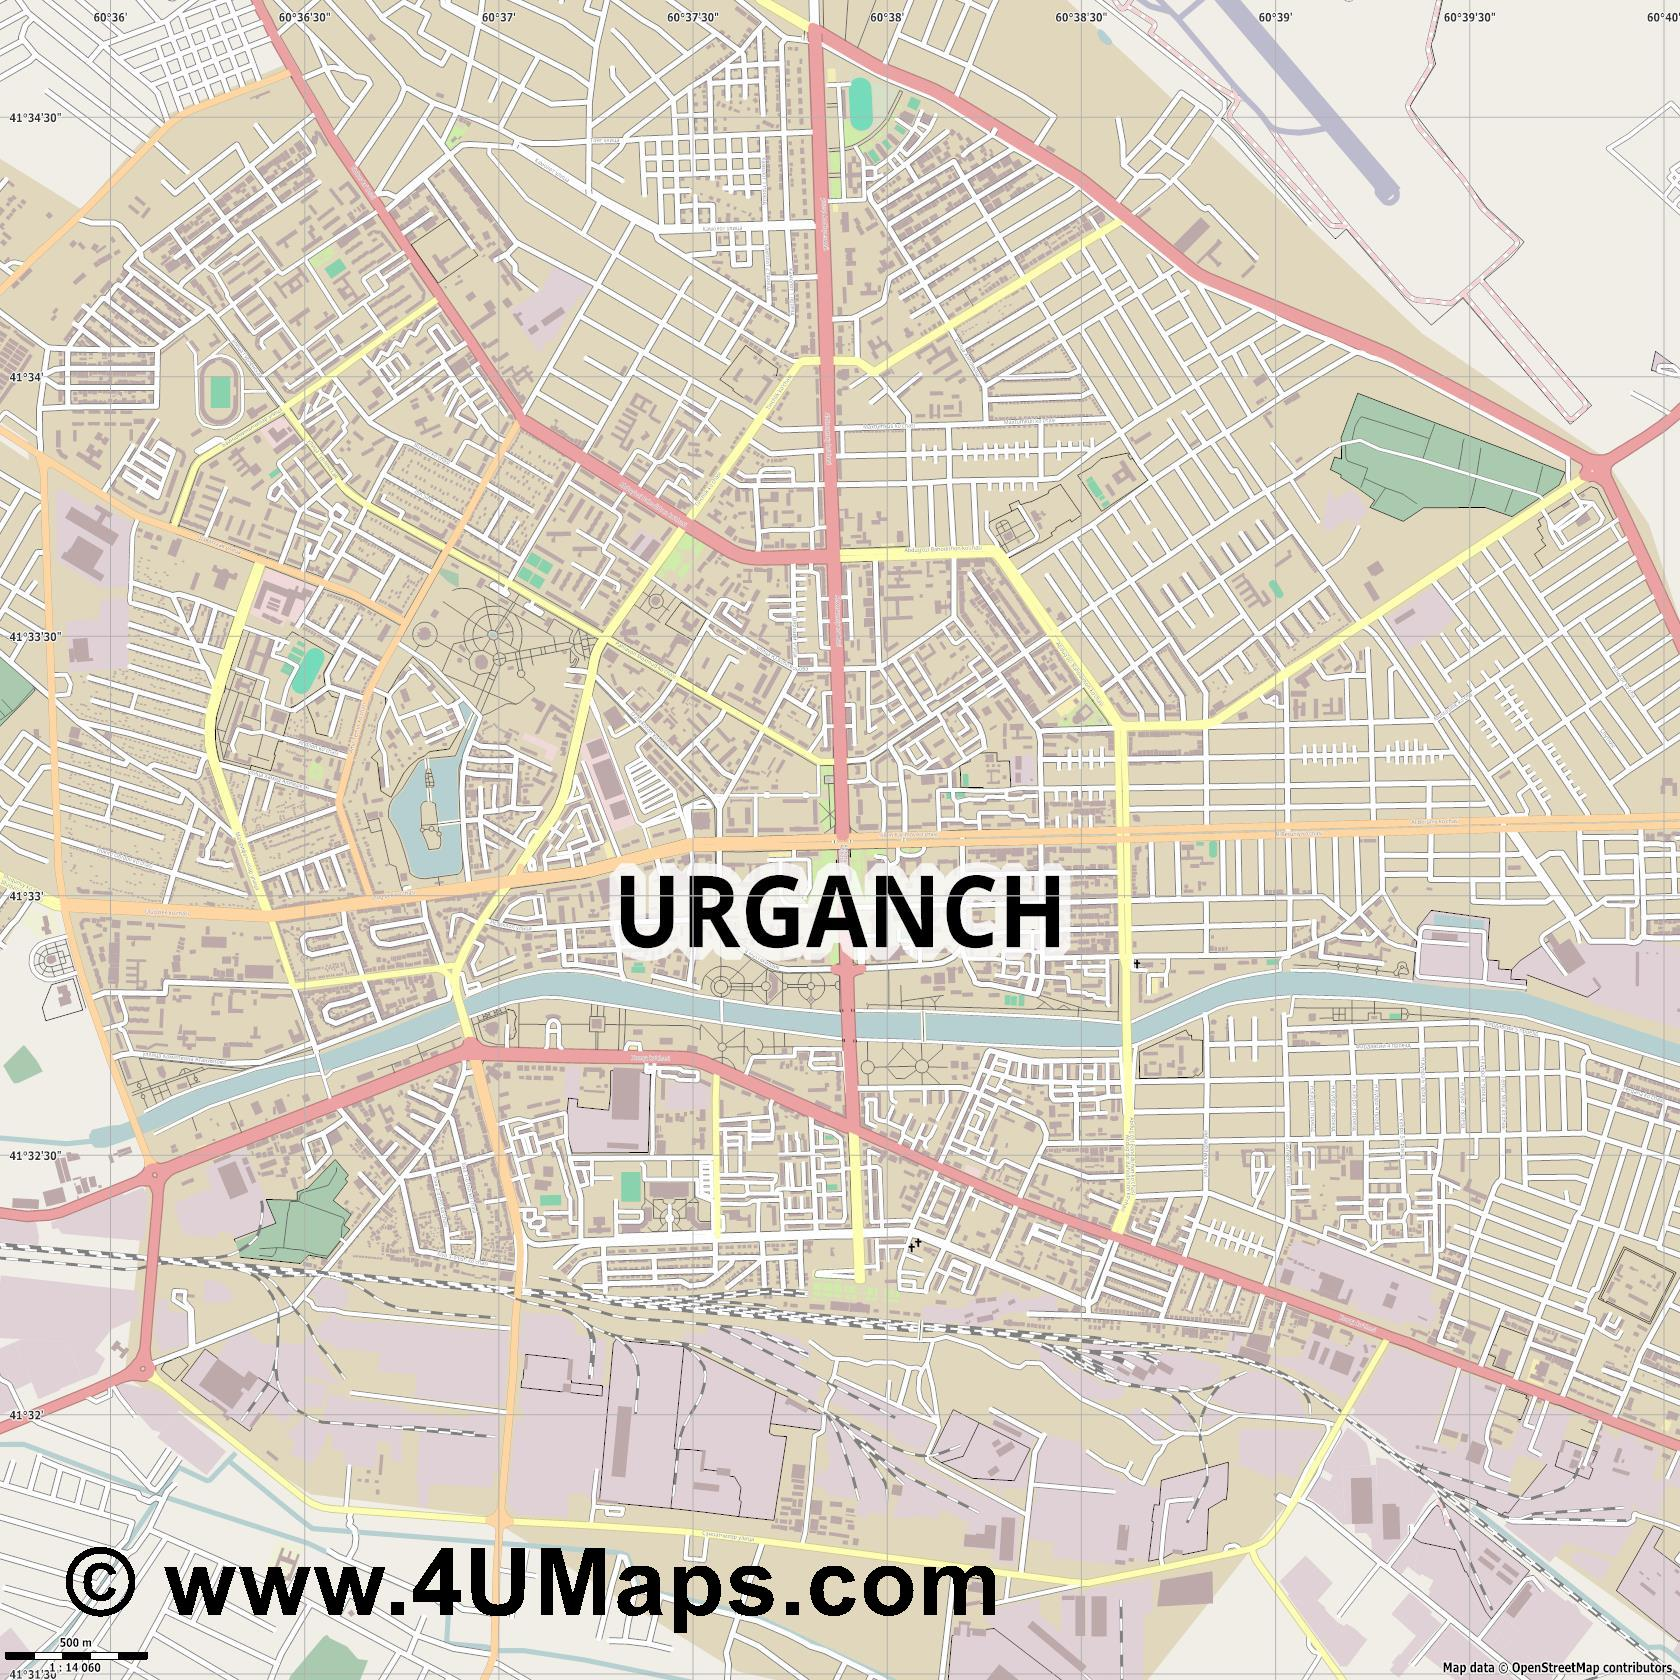 Urganch Urgench Ourguentch  jpg ultra high detail preview vector city map